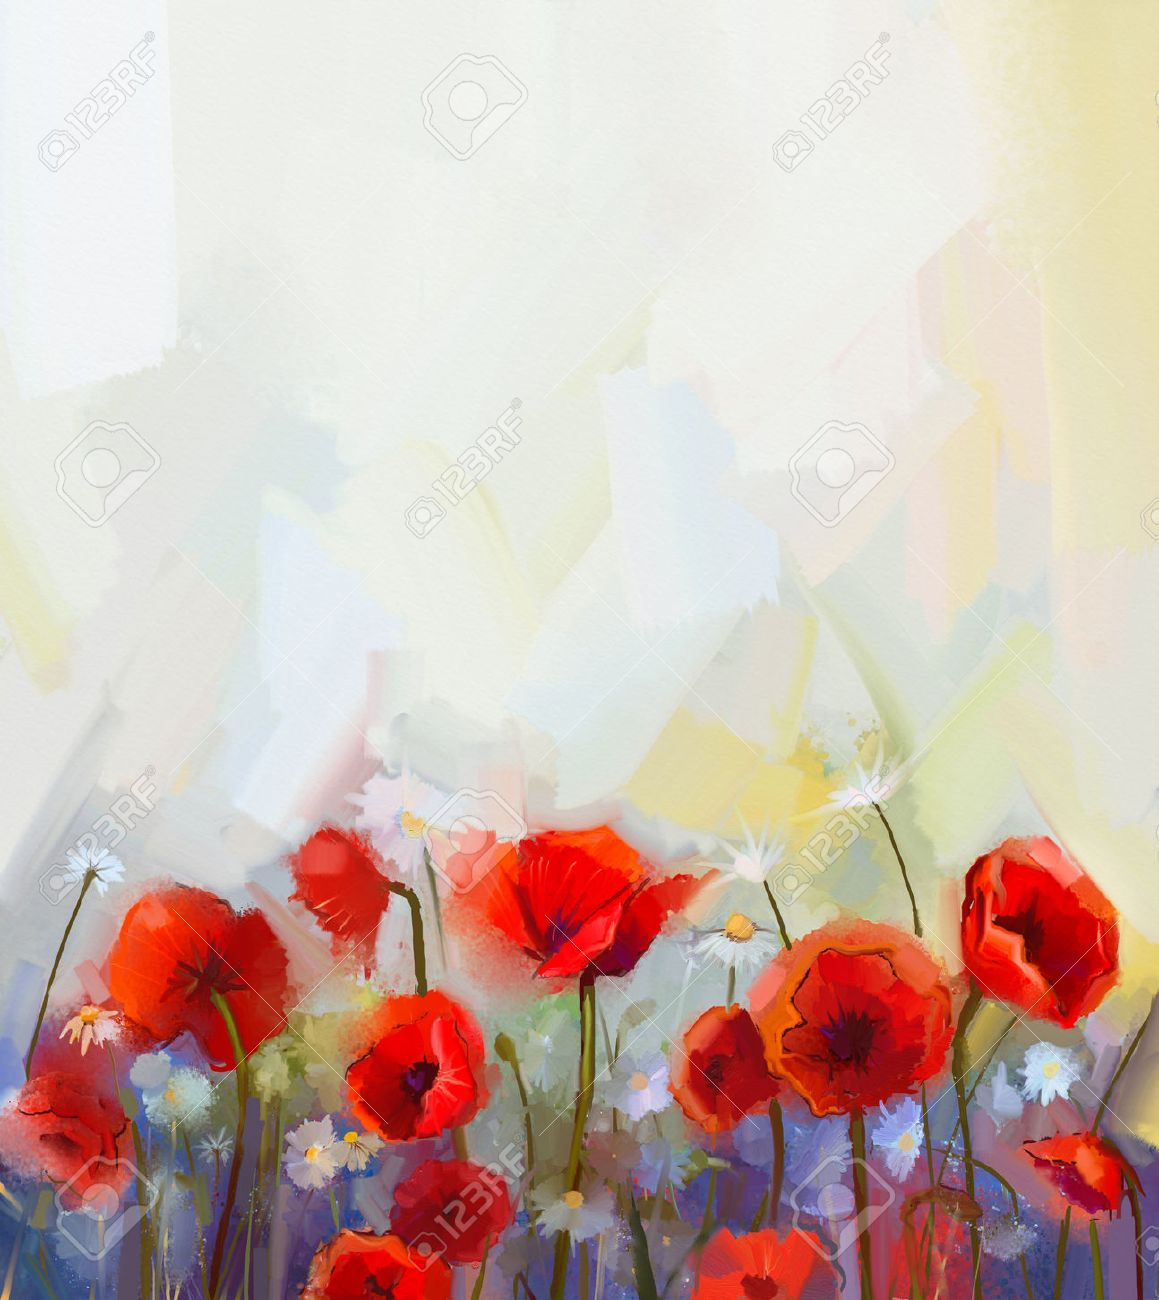 Oil painting red poppy flowers spring floral nature background oil painting red poppy flowers spring floral nature background stock photo 43543758 mightylinksfo